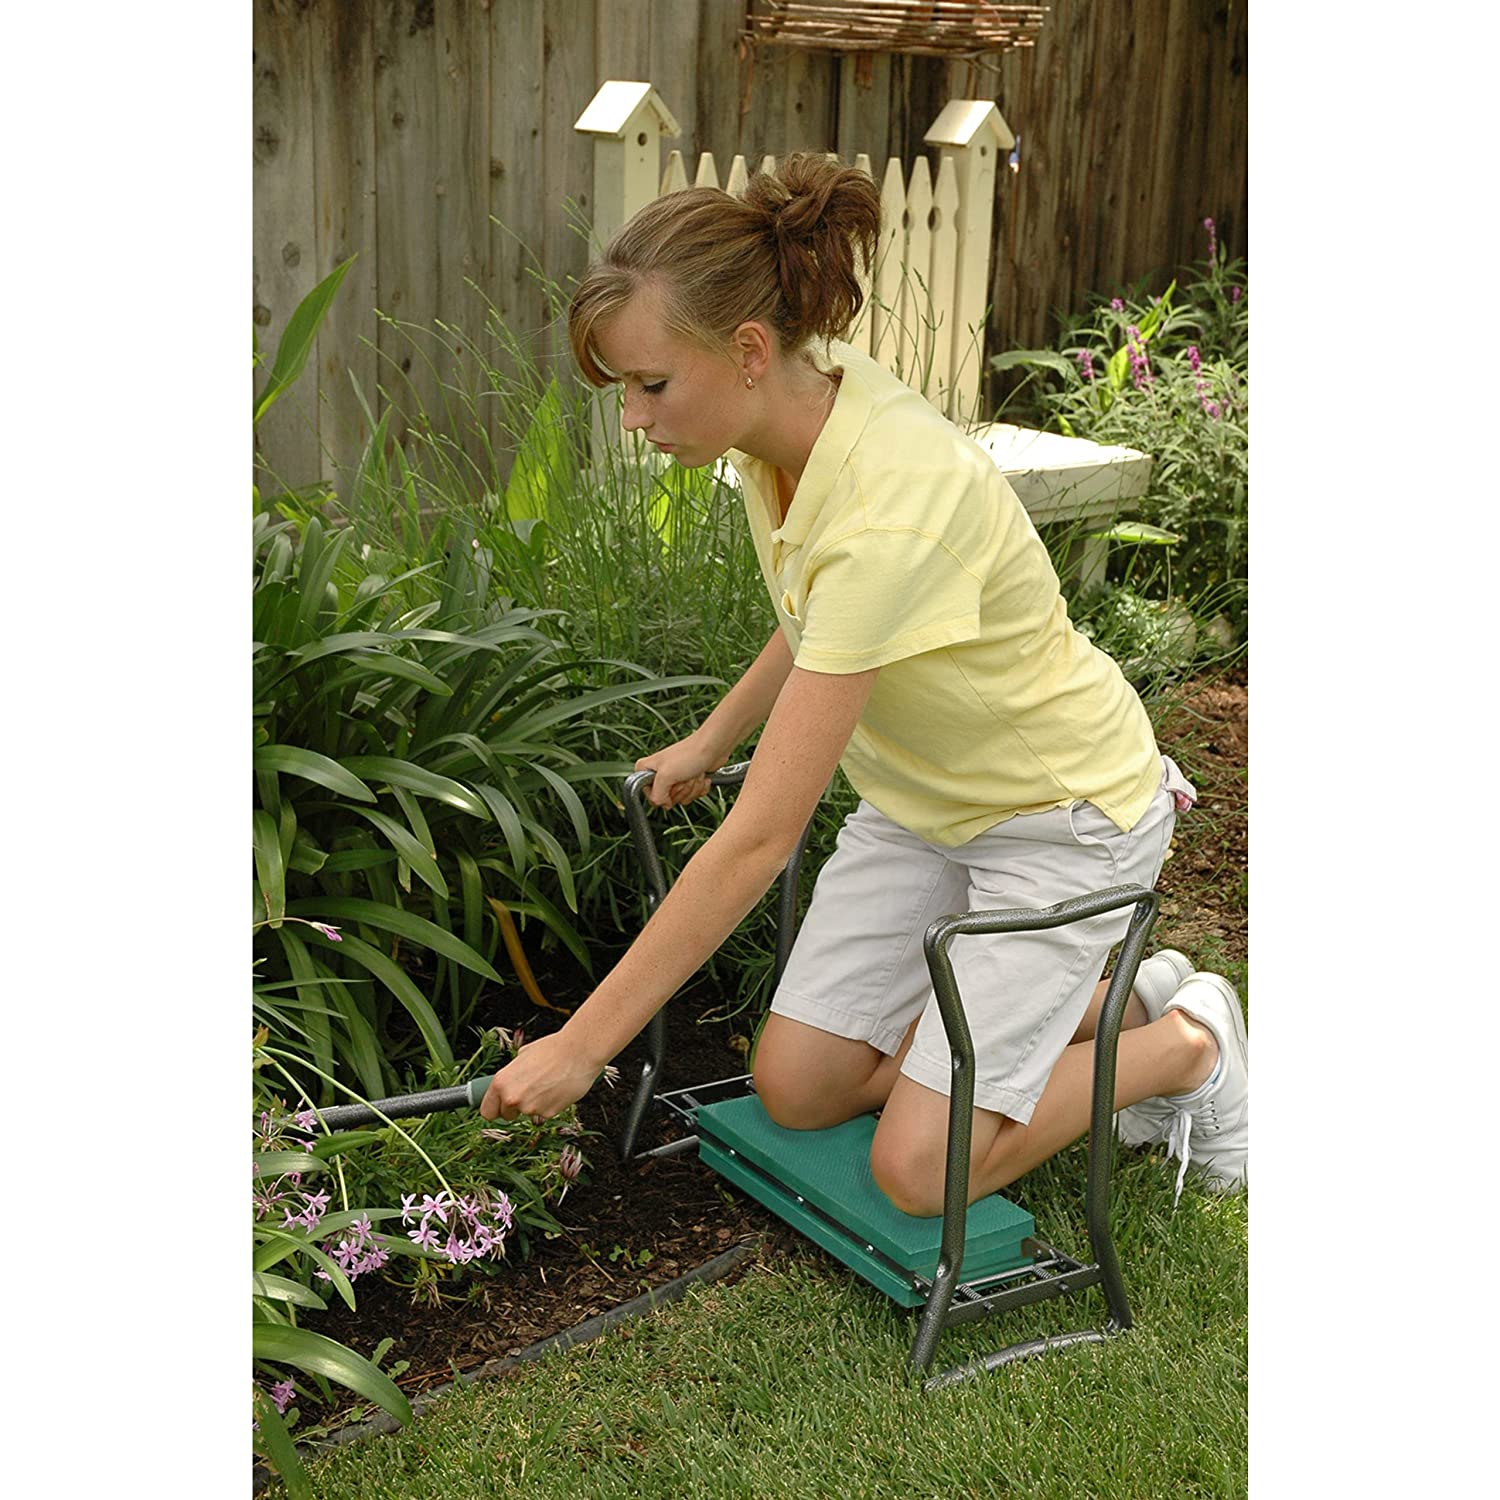 Amazon.com : Yard Butler GKS 2 Garden Kneeler And Seat (Older Model) :  Outdoor And Patio Furniture : Garden U0026 Outdoor